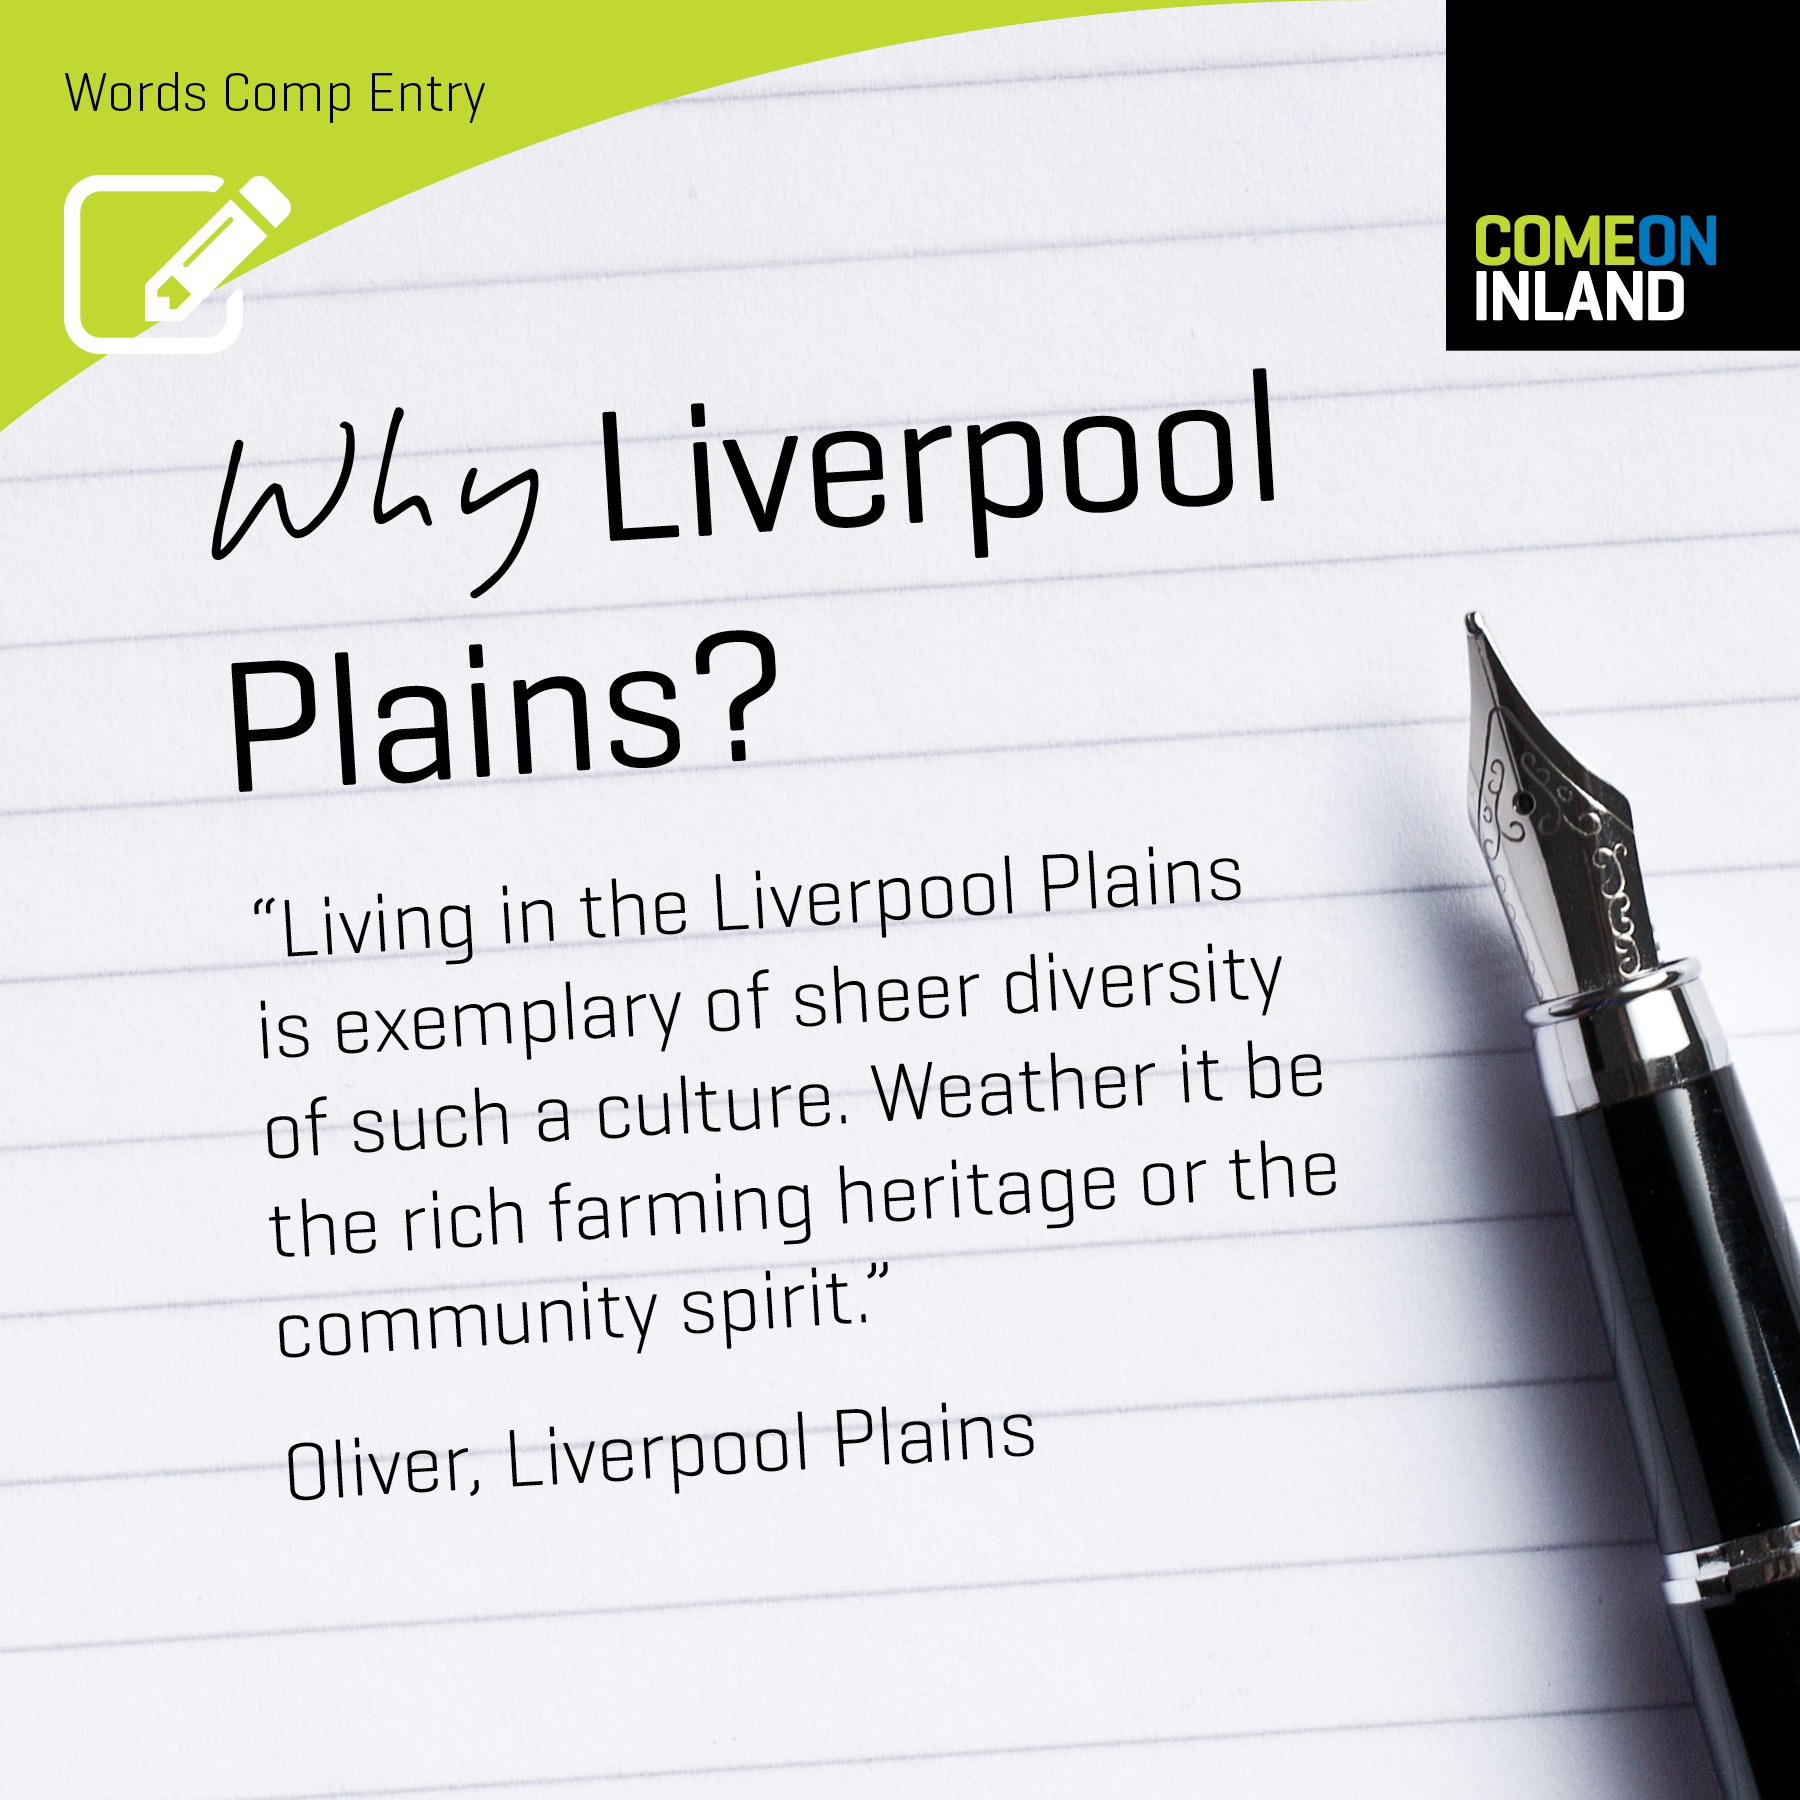 Liverpool Plains Words competition entry from Oliver